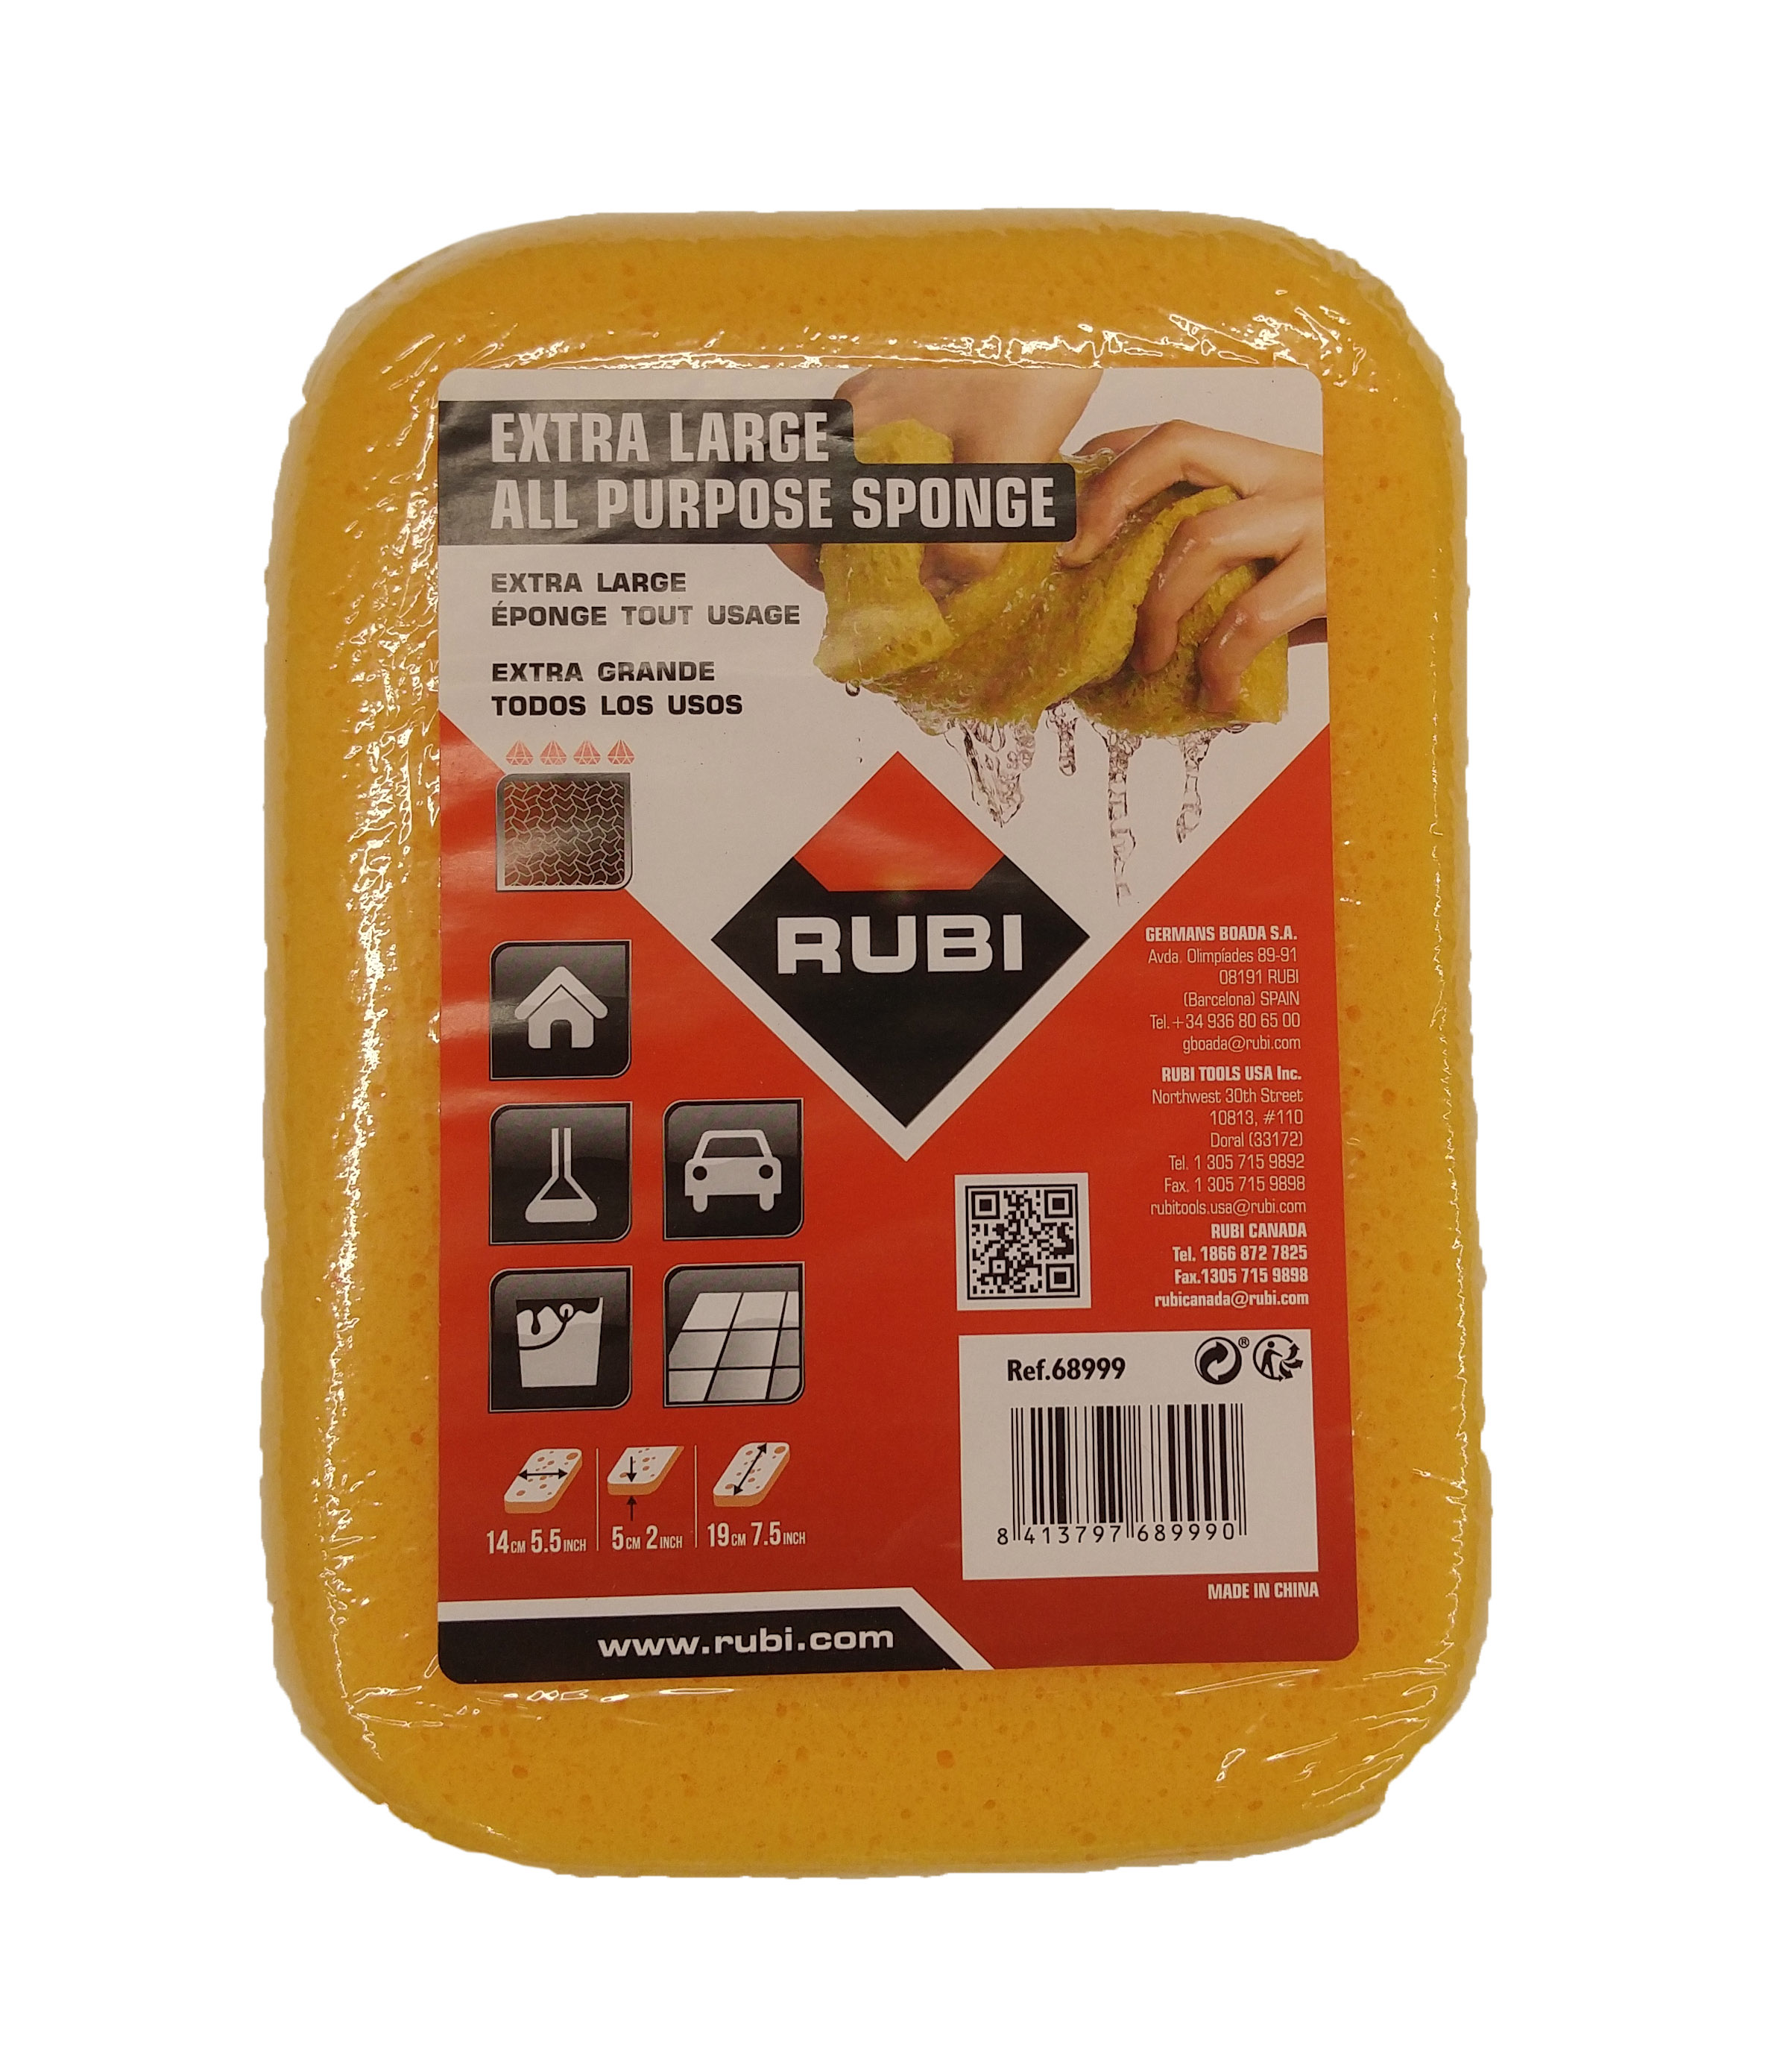 68999 Extra Large Grouting Sponge 7 5 x 5 5 x 2 Inches by Rubi